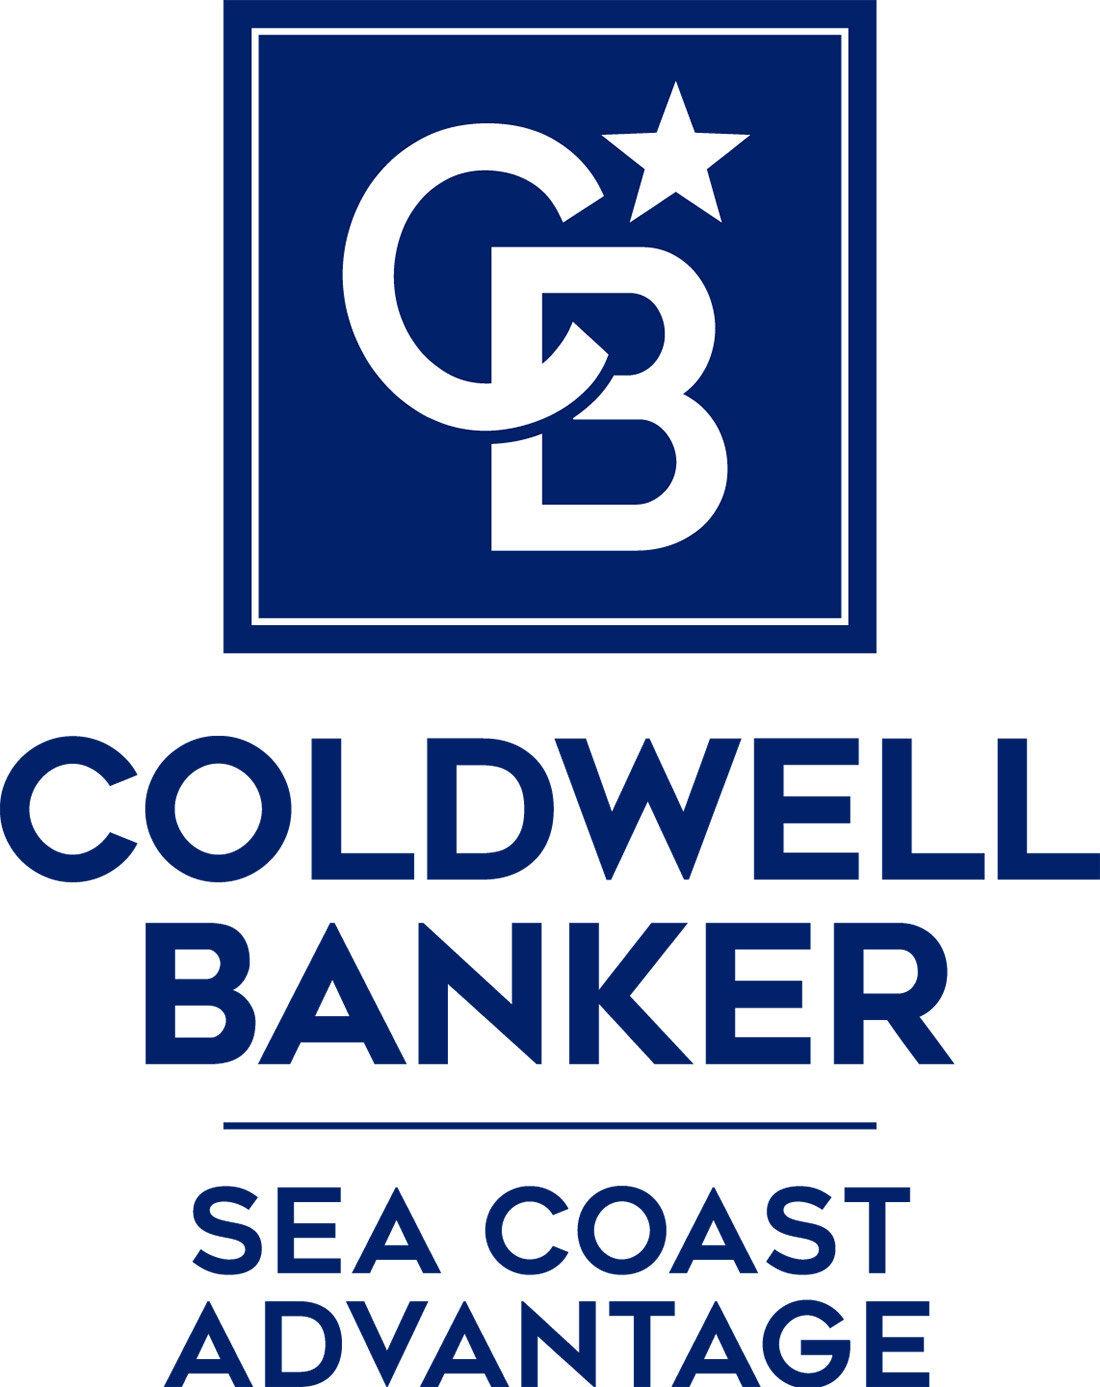 Coldwell Banker Sea Coast Advantage - Enzor & Associates